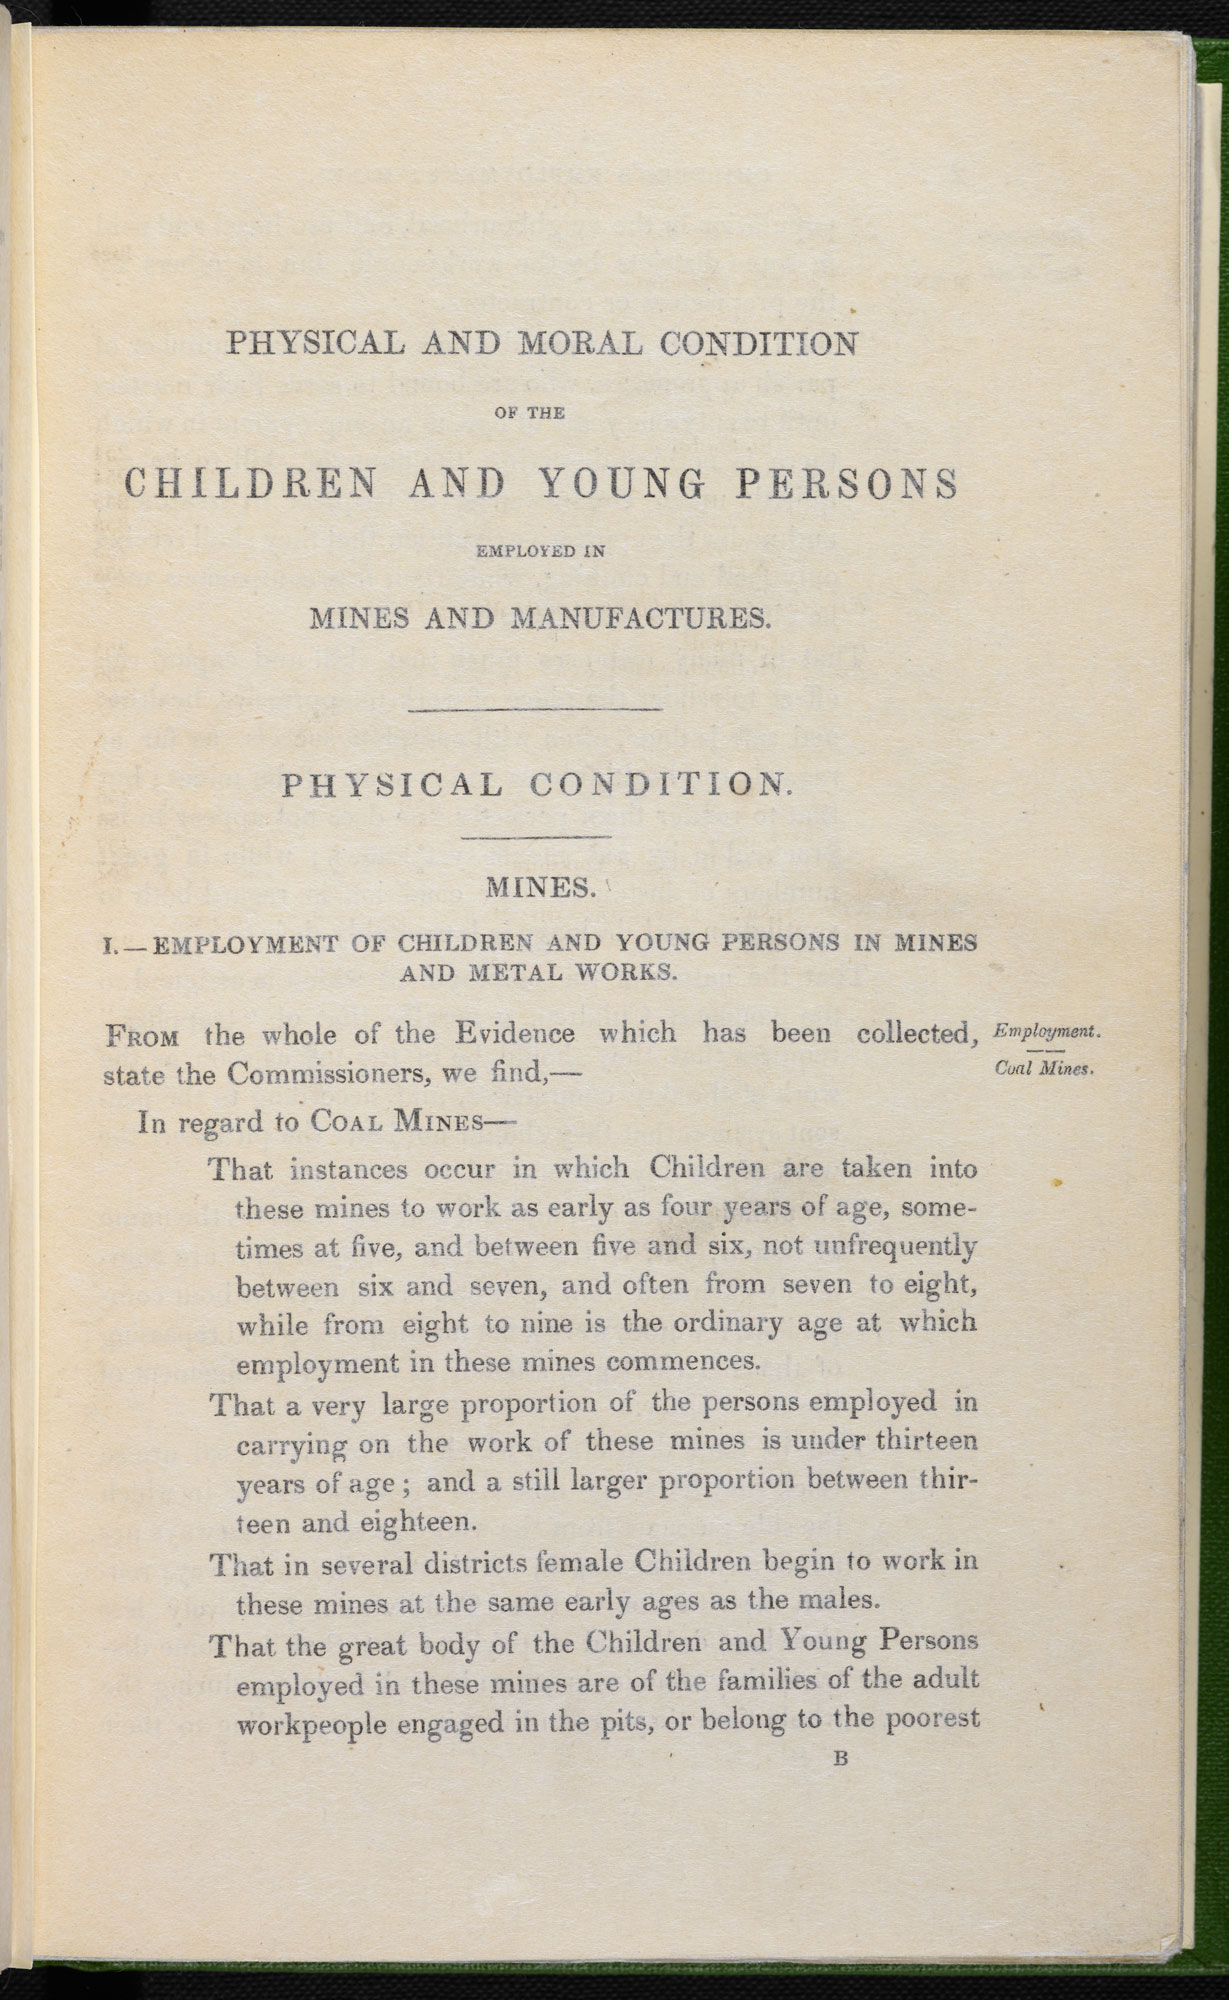 The Physical and Moral Condition of the Children and Young Persons employed in Mines and Manufactures, 1843 [page: [1]]